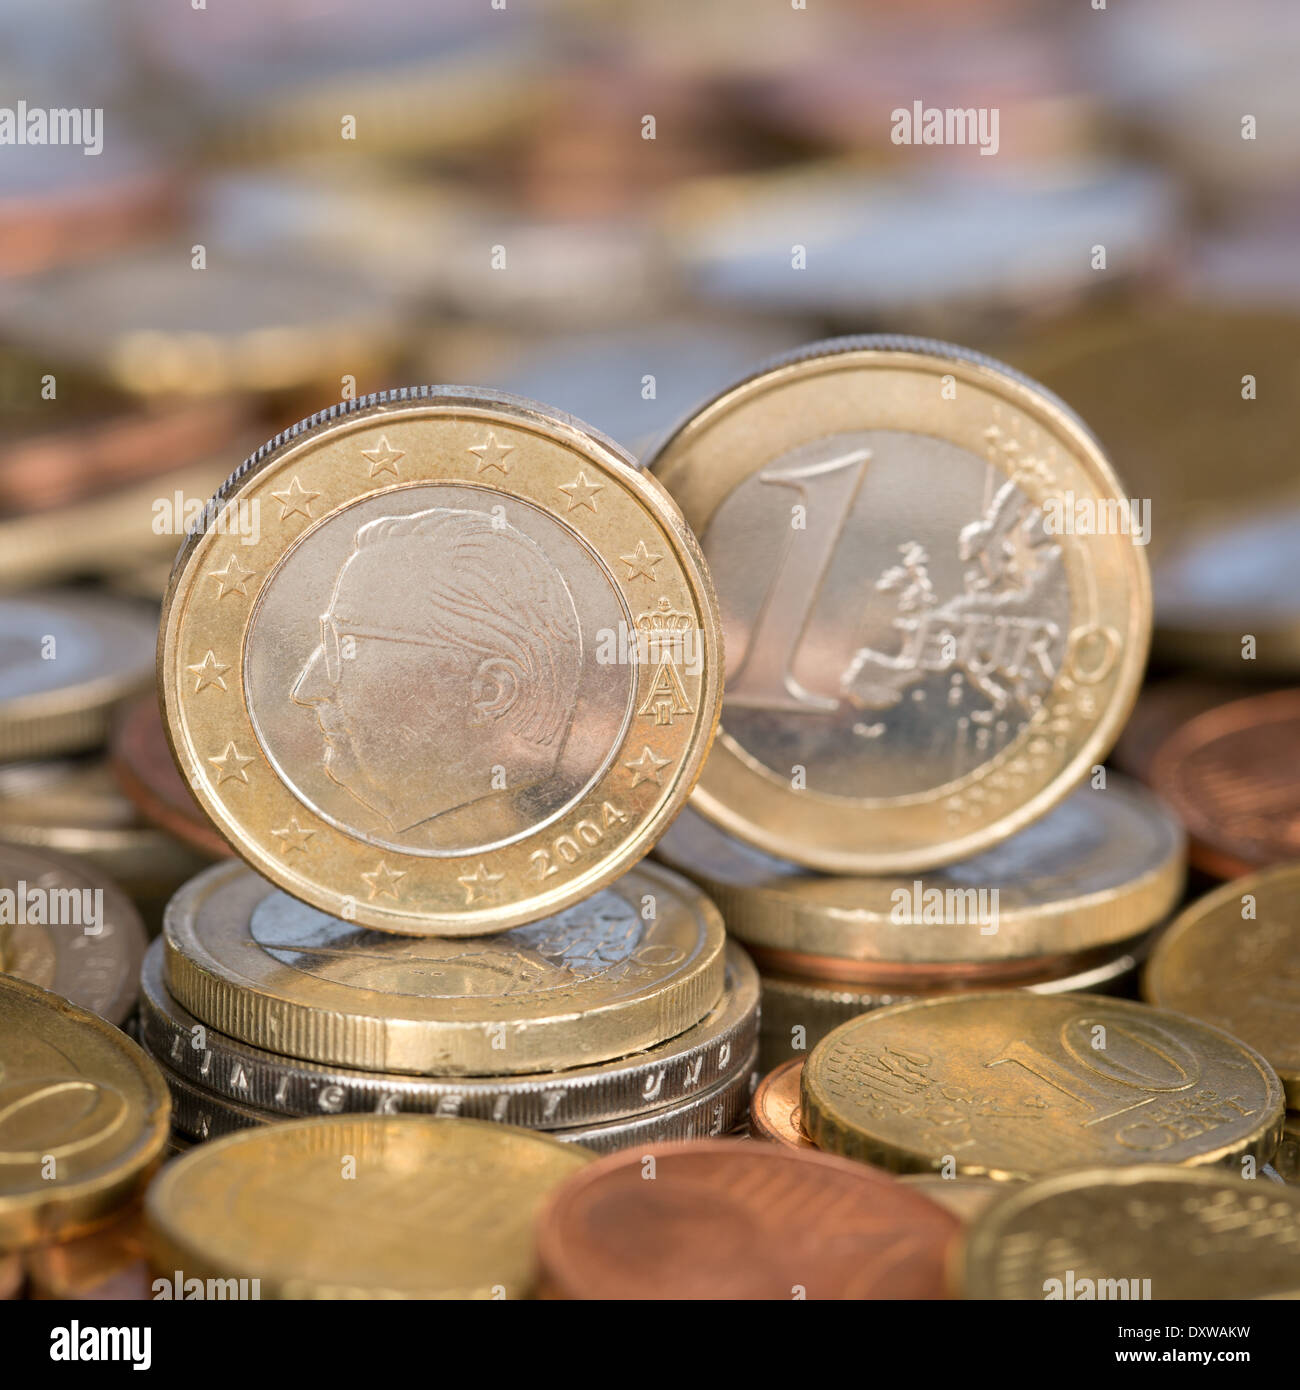 A one Euro coin from the European Union currency member country Belgium - Stock Image